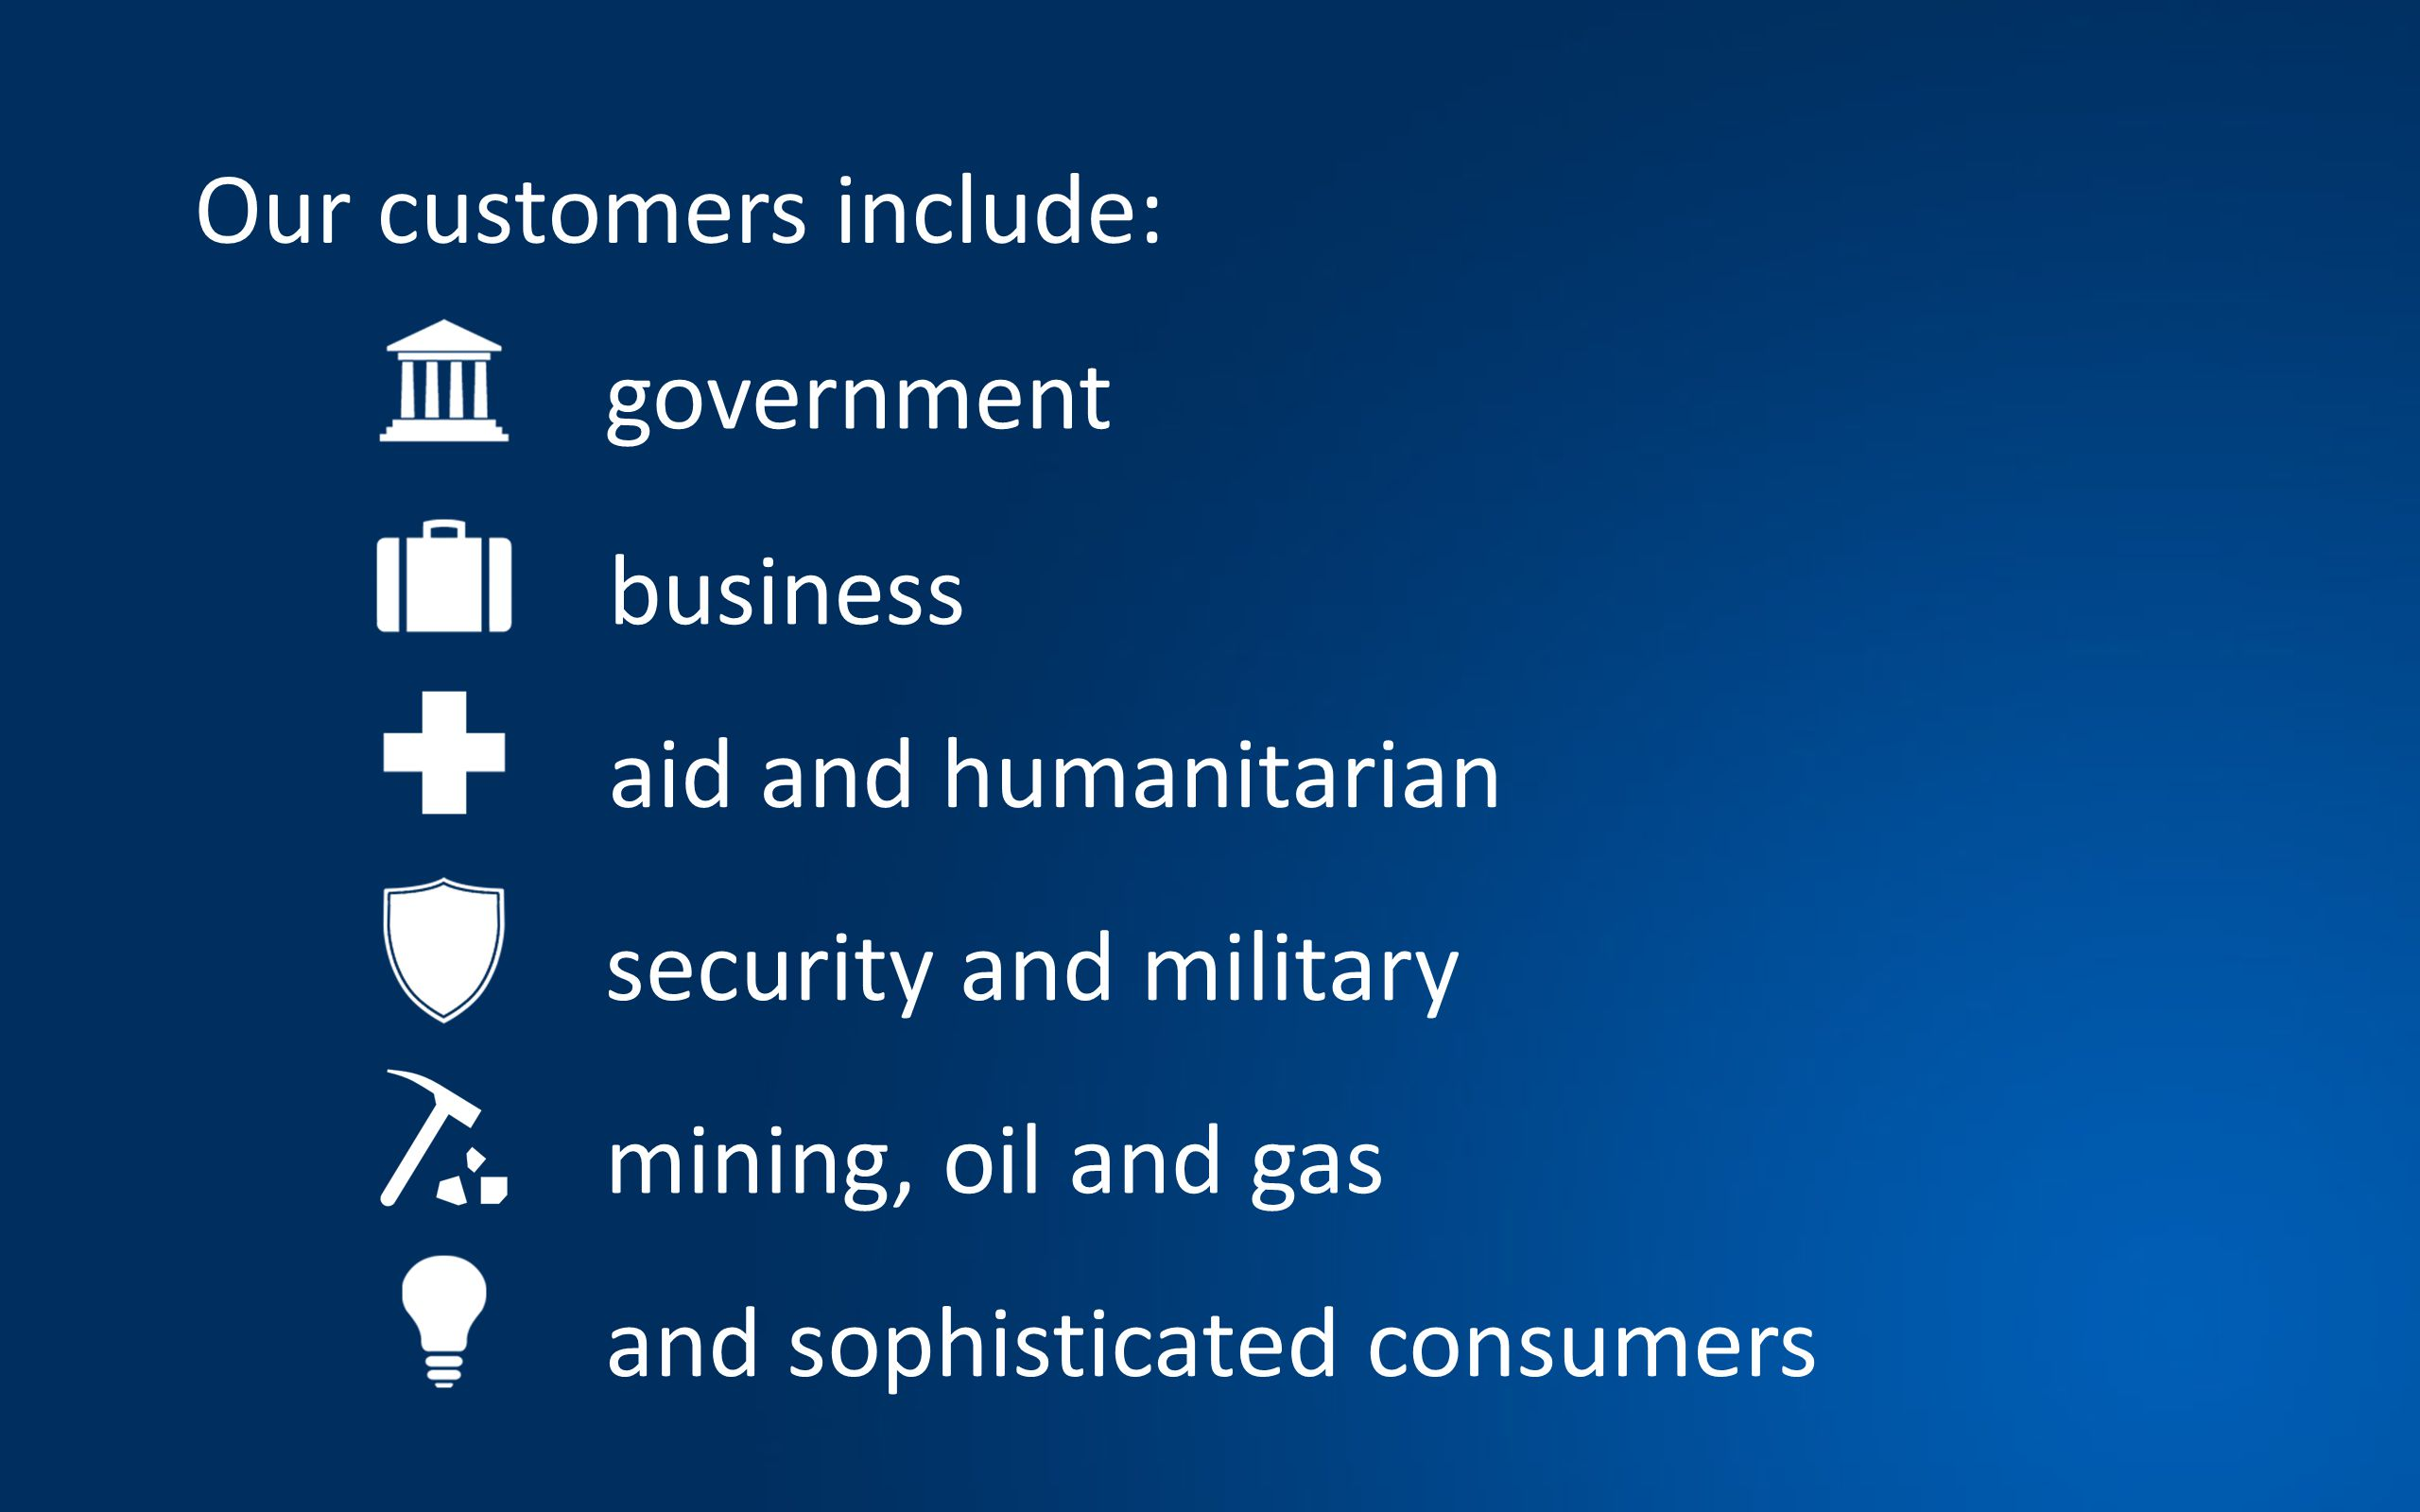 Our customers include: government business aid and humanitarian security and military mining, oil and gas and sophisticated consumers